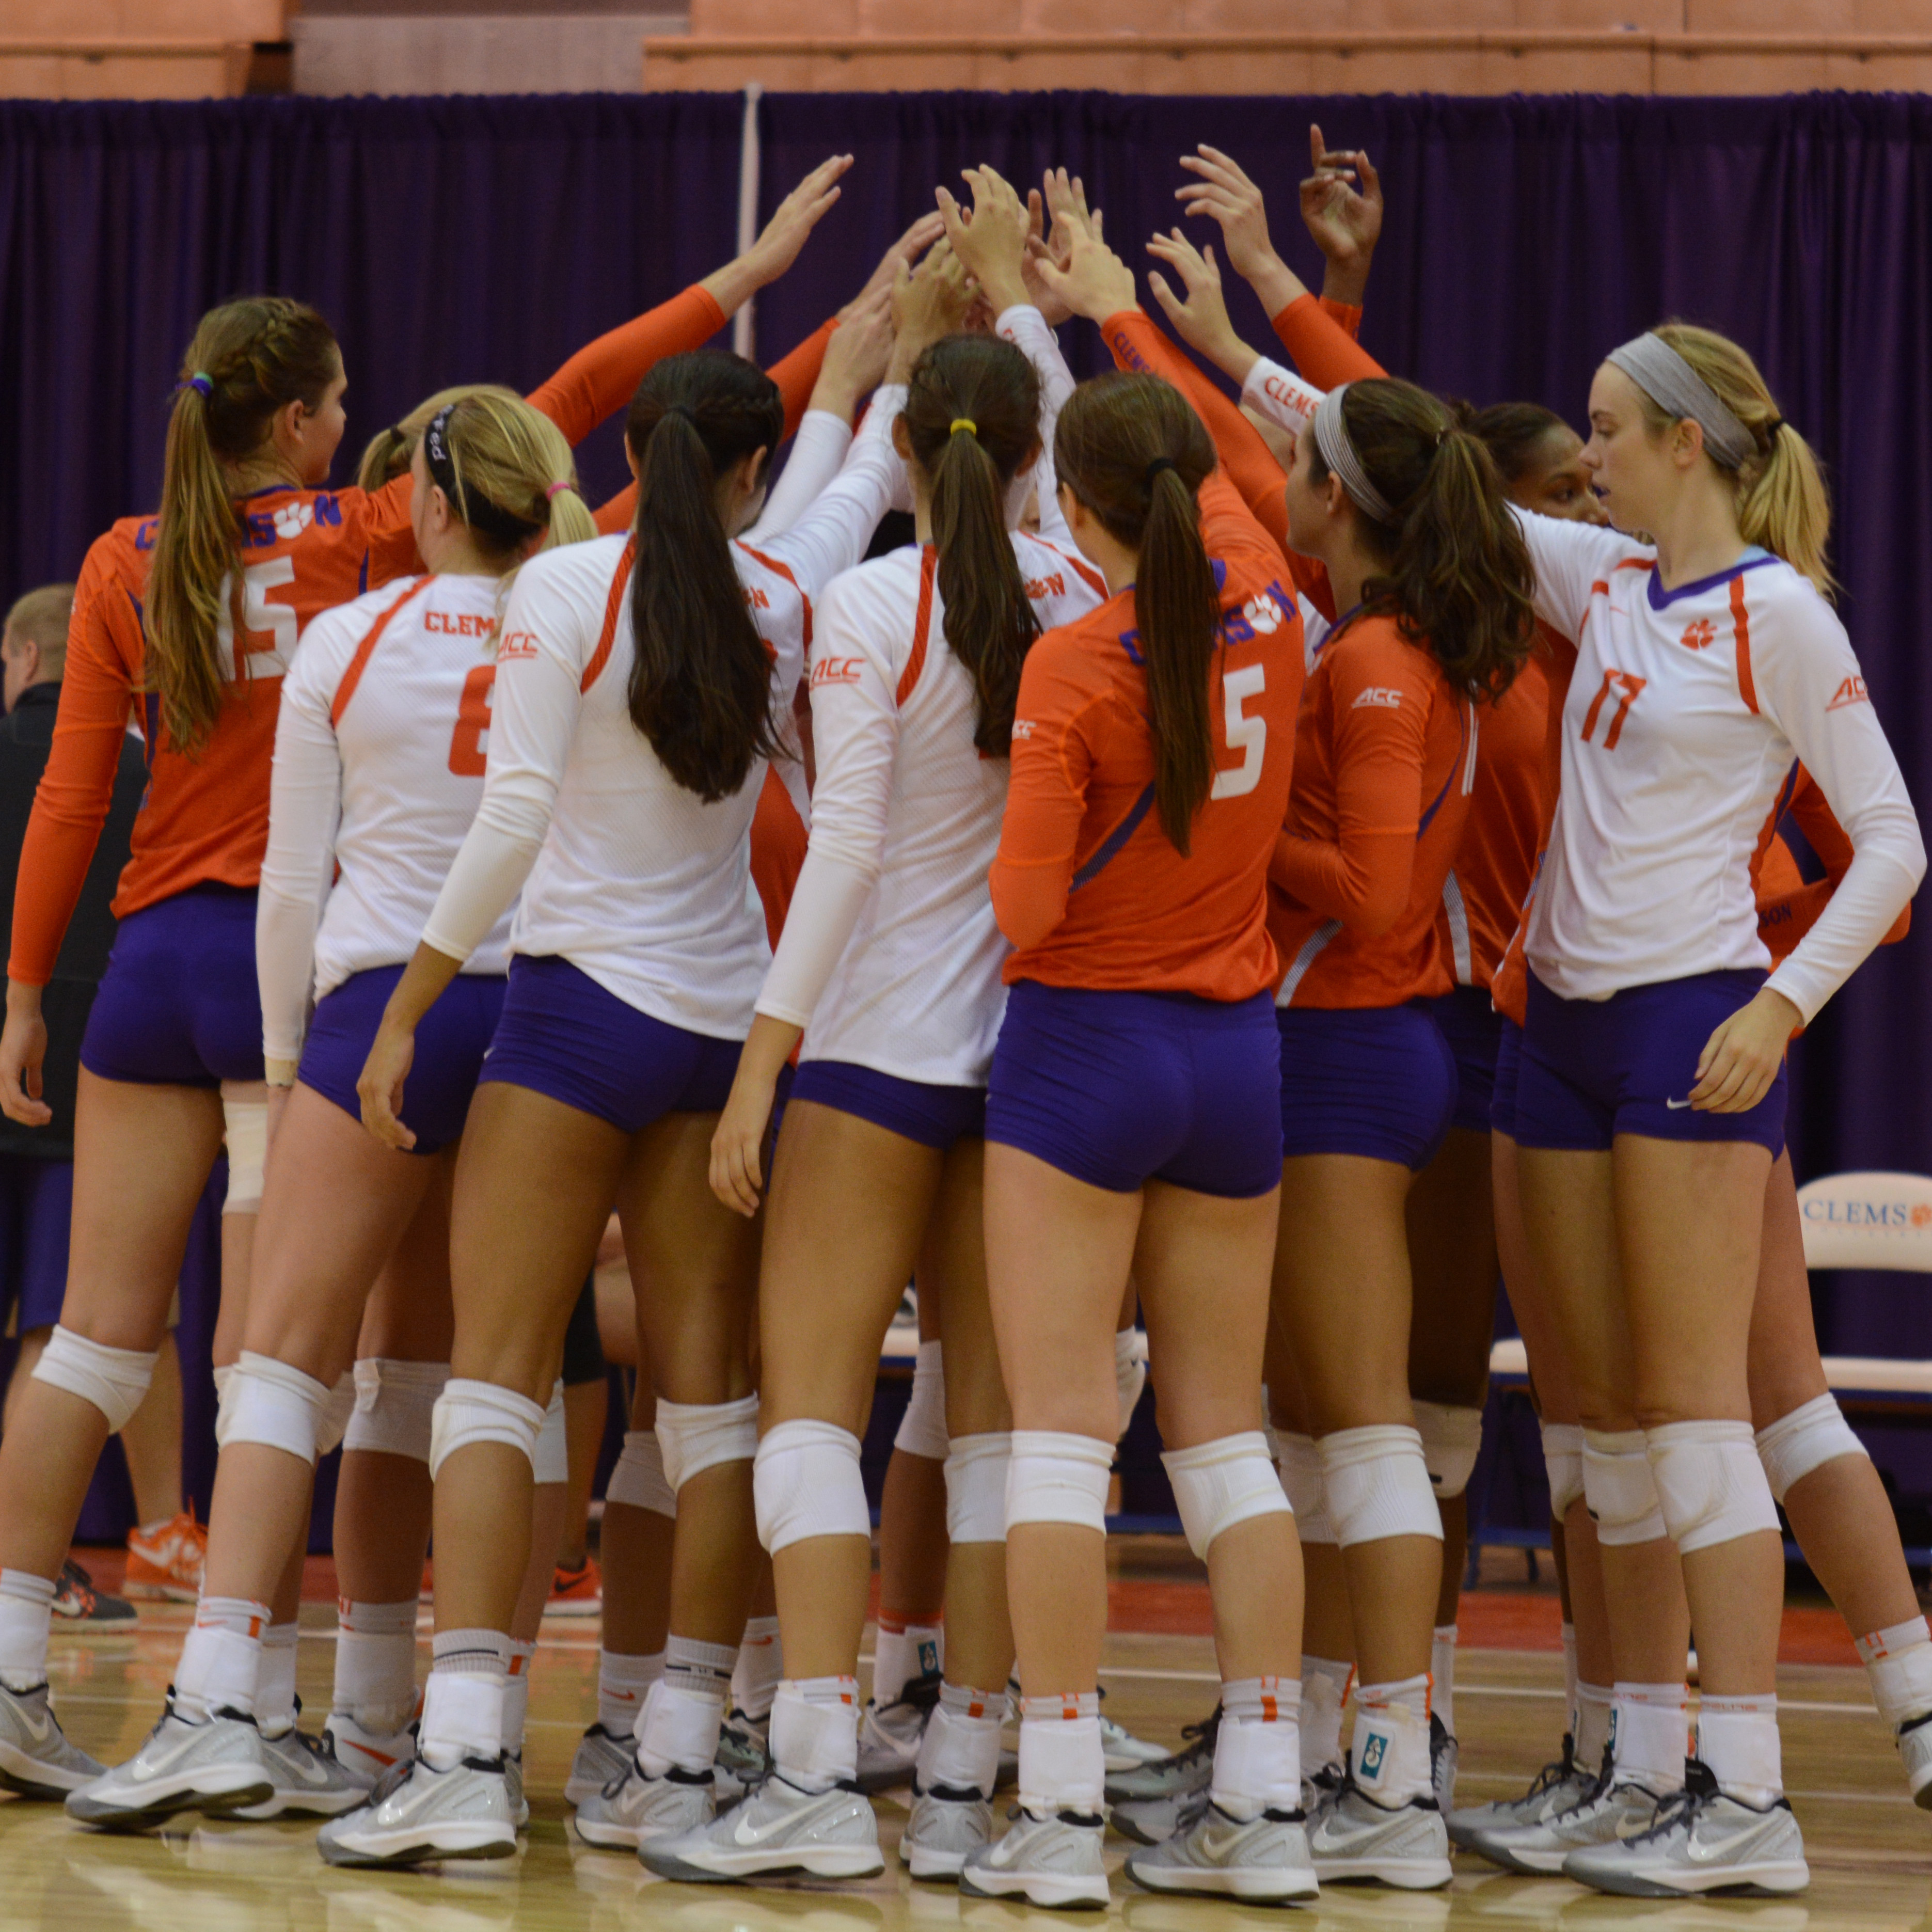 The Clemson Volleyball Family